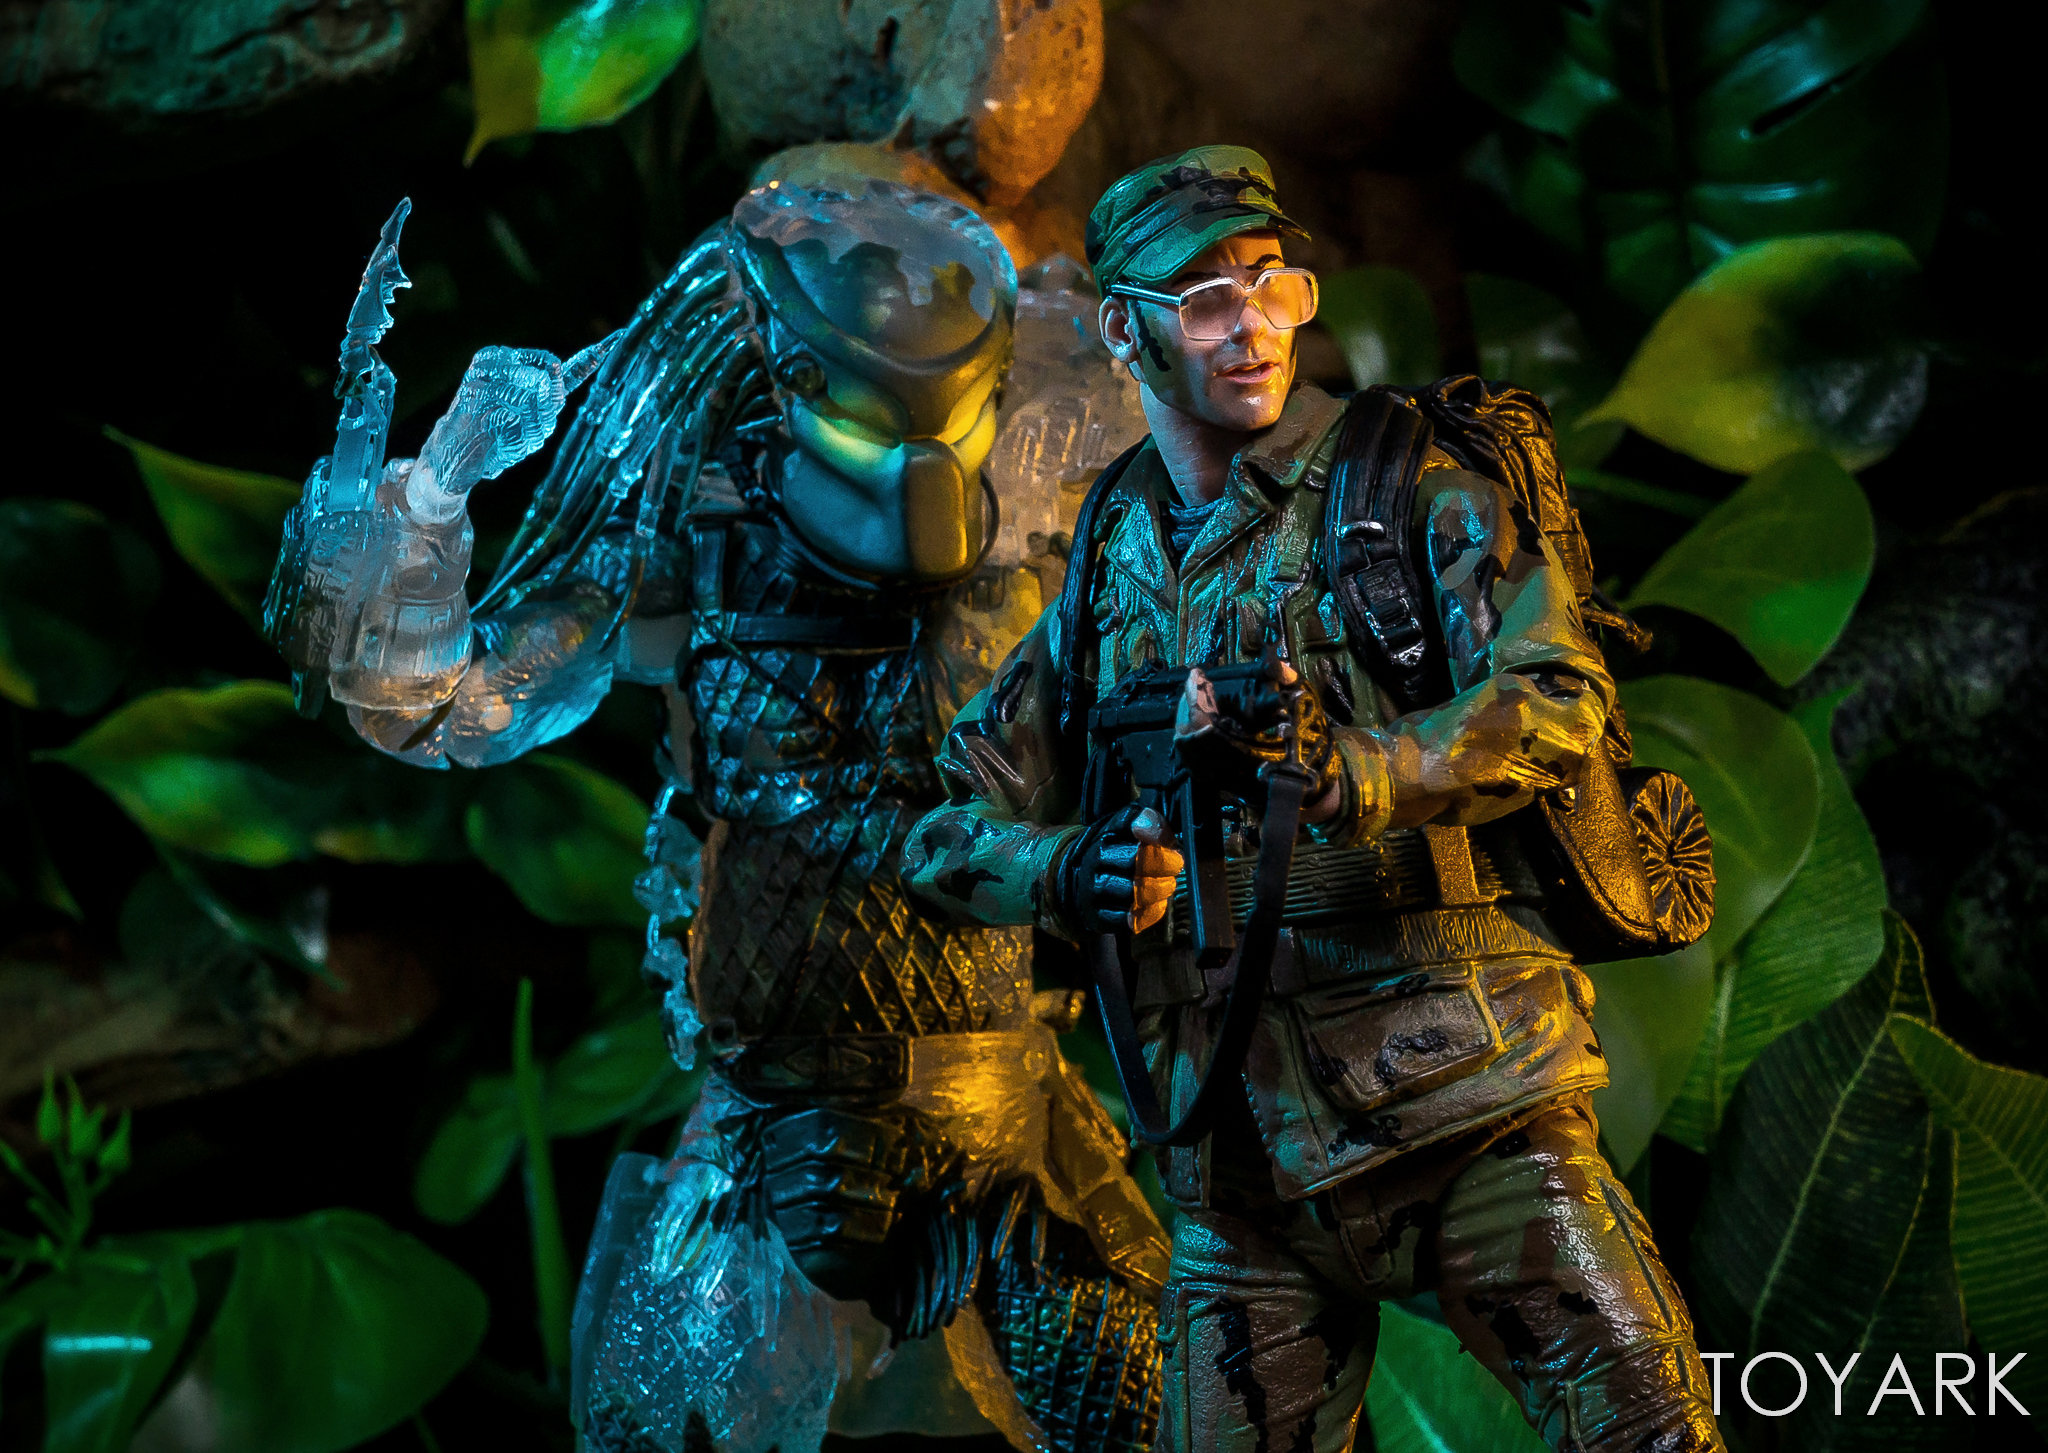 https://news.toyark.com/wp-content/uploads/sites/4/2018/07/NECA-SDCC2018-Predator-Hawkins-020.jpg